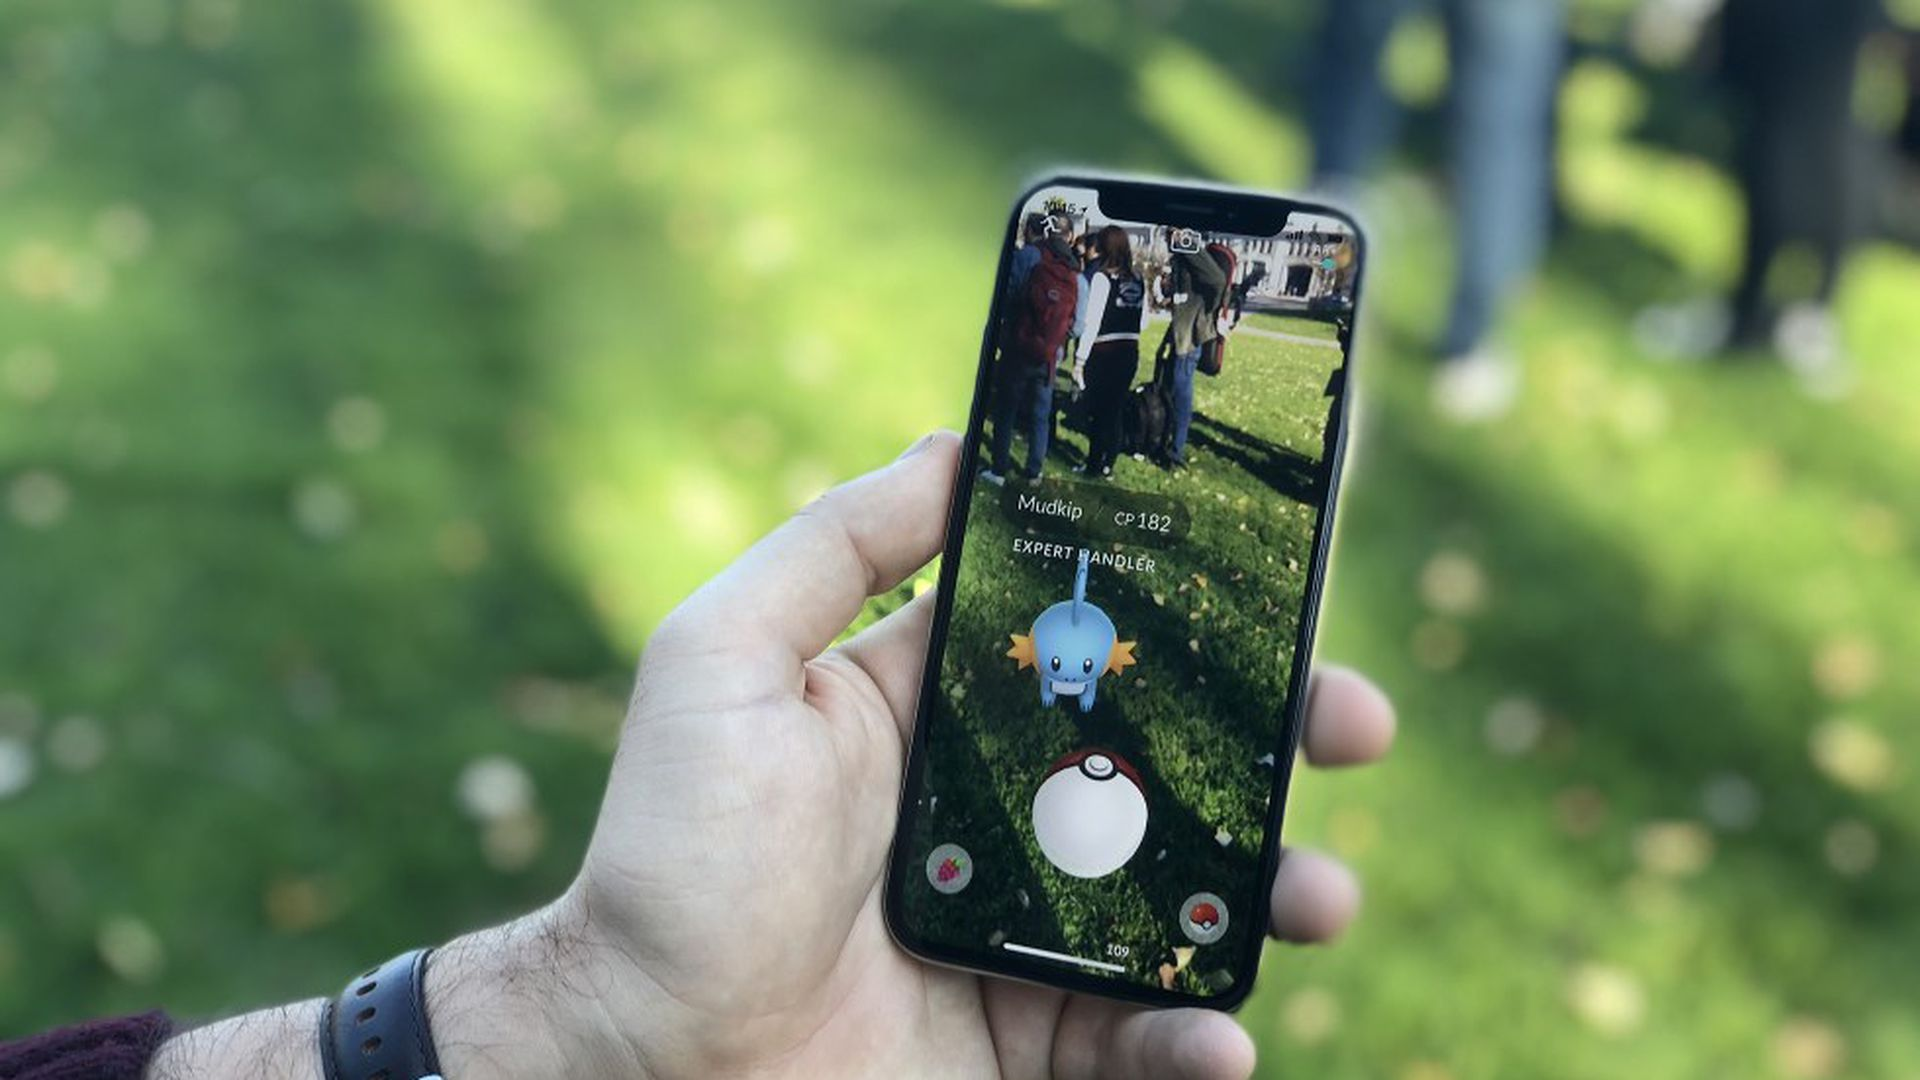 Pokémon Go is reverting its COVID-related features